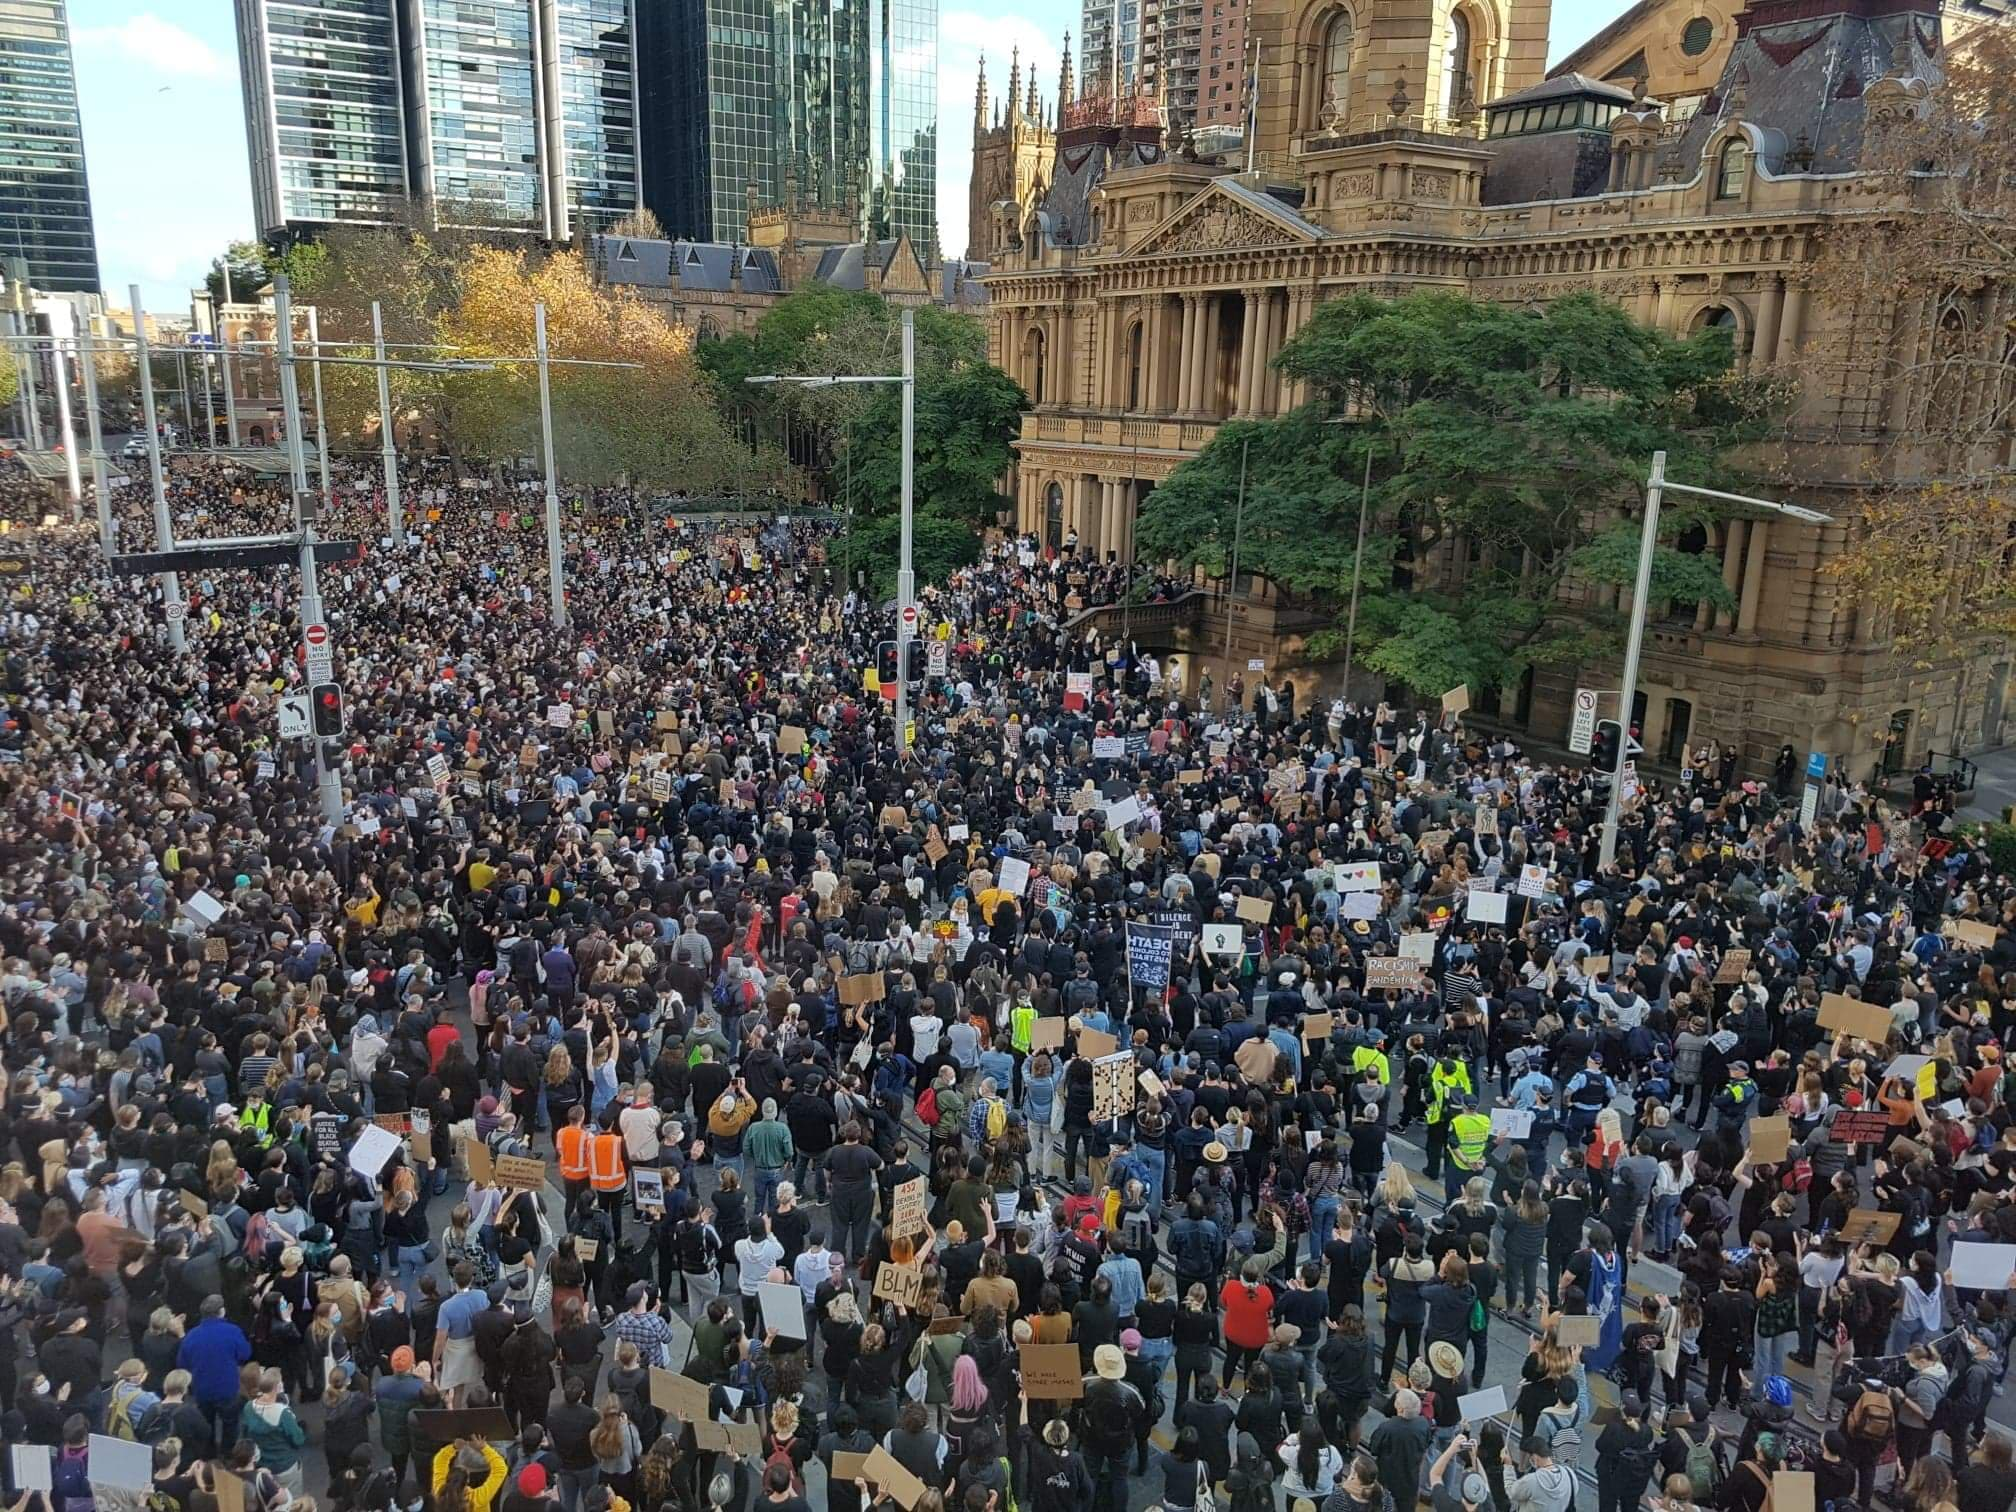 Protesters gathered in Sydney's CBD